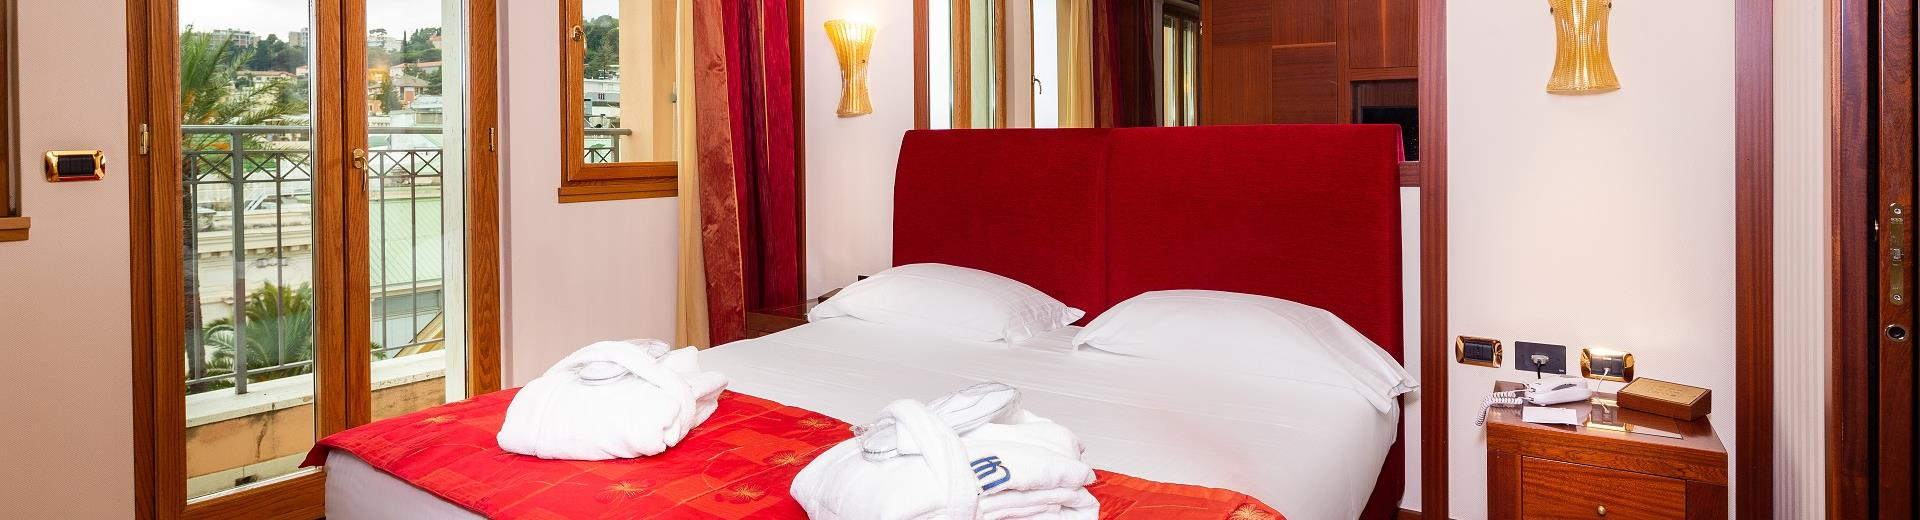 Comfort and special services in our rooms in Sanremo centro